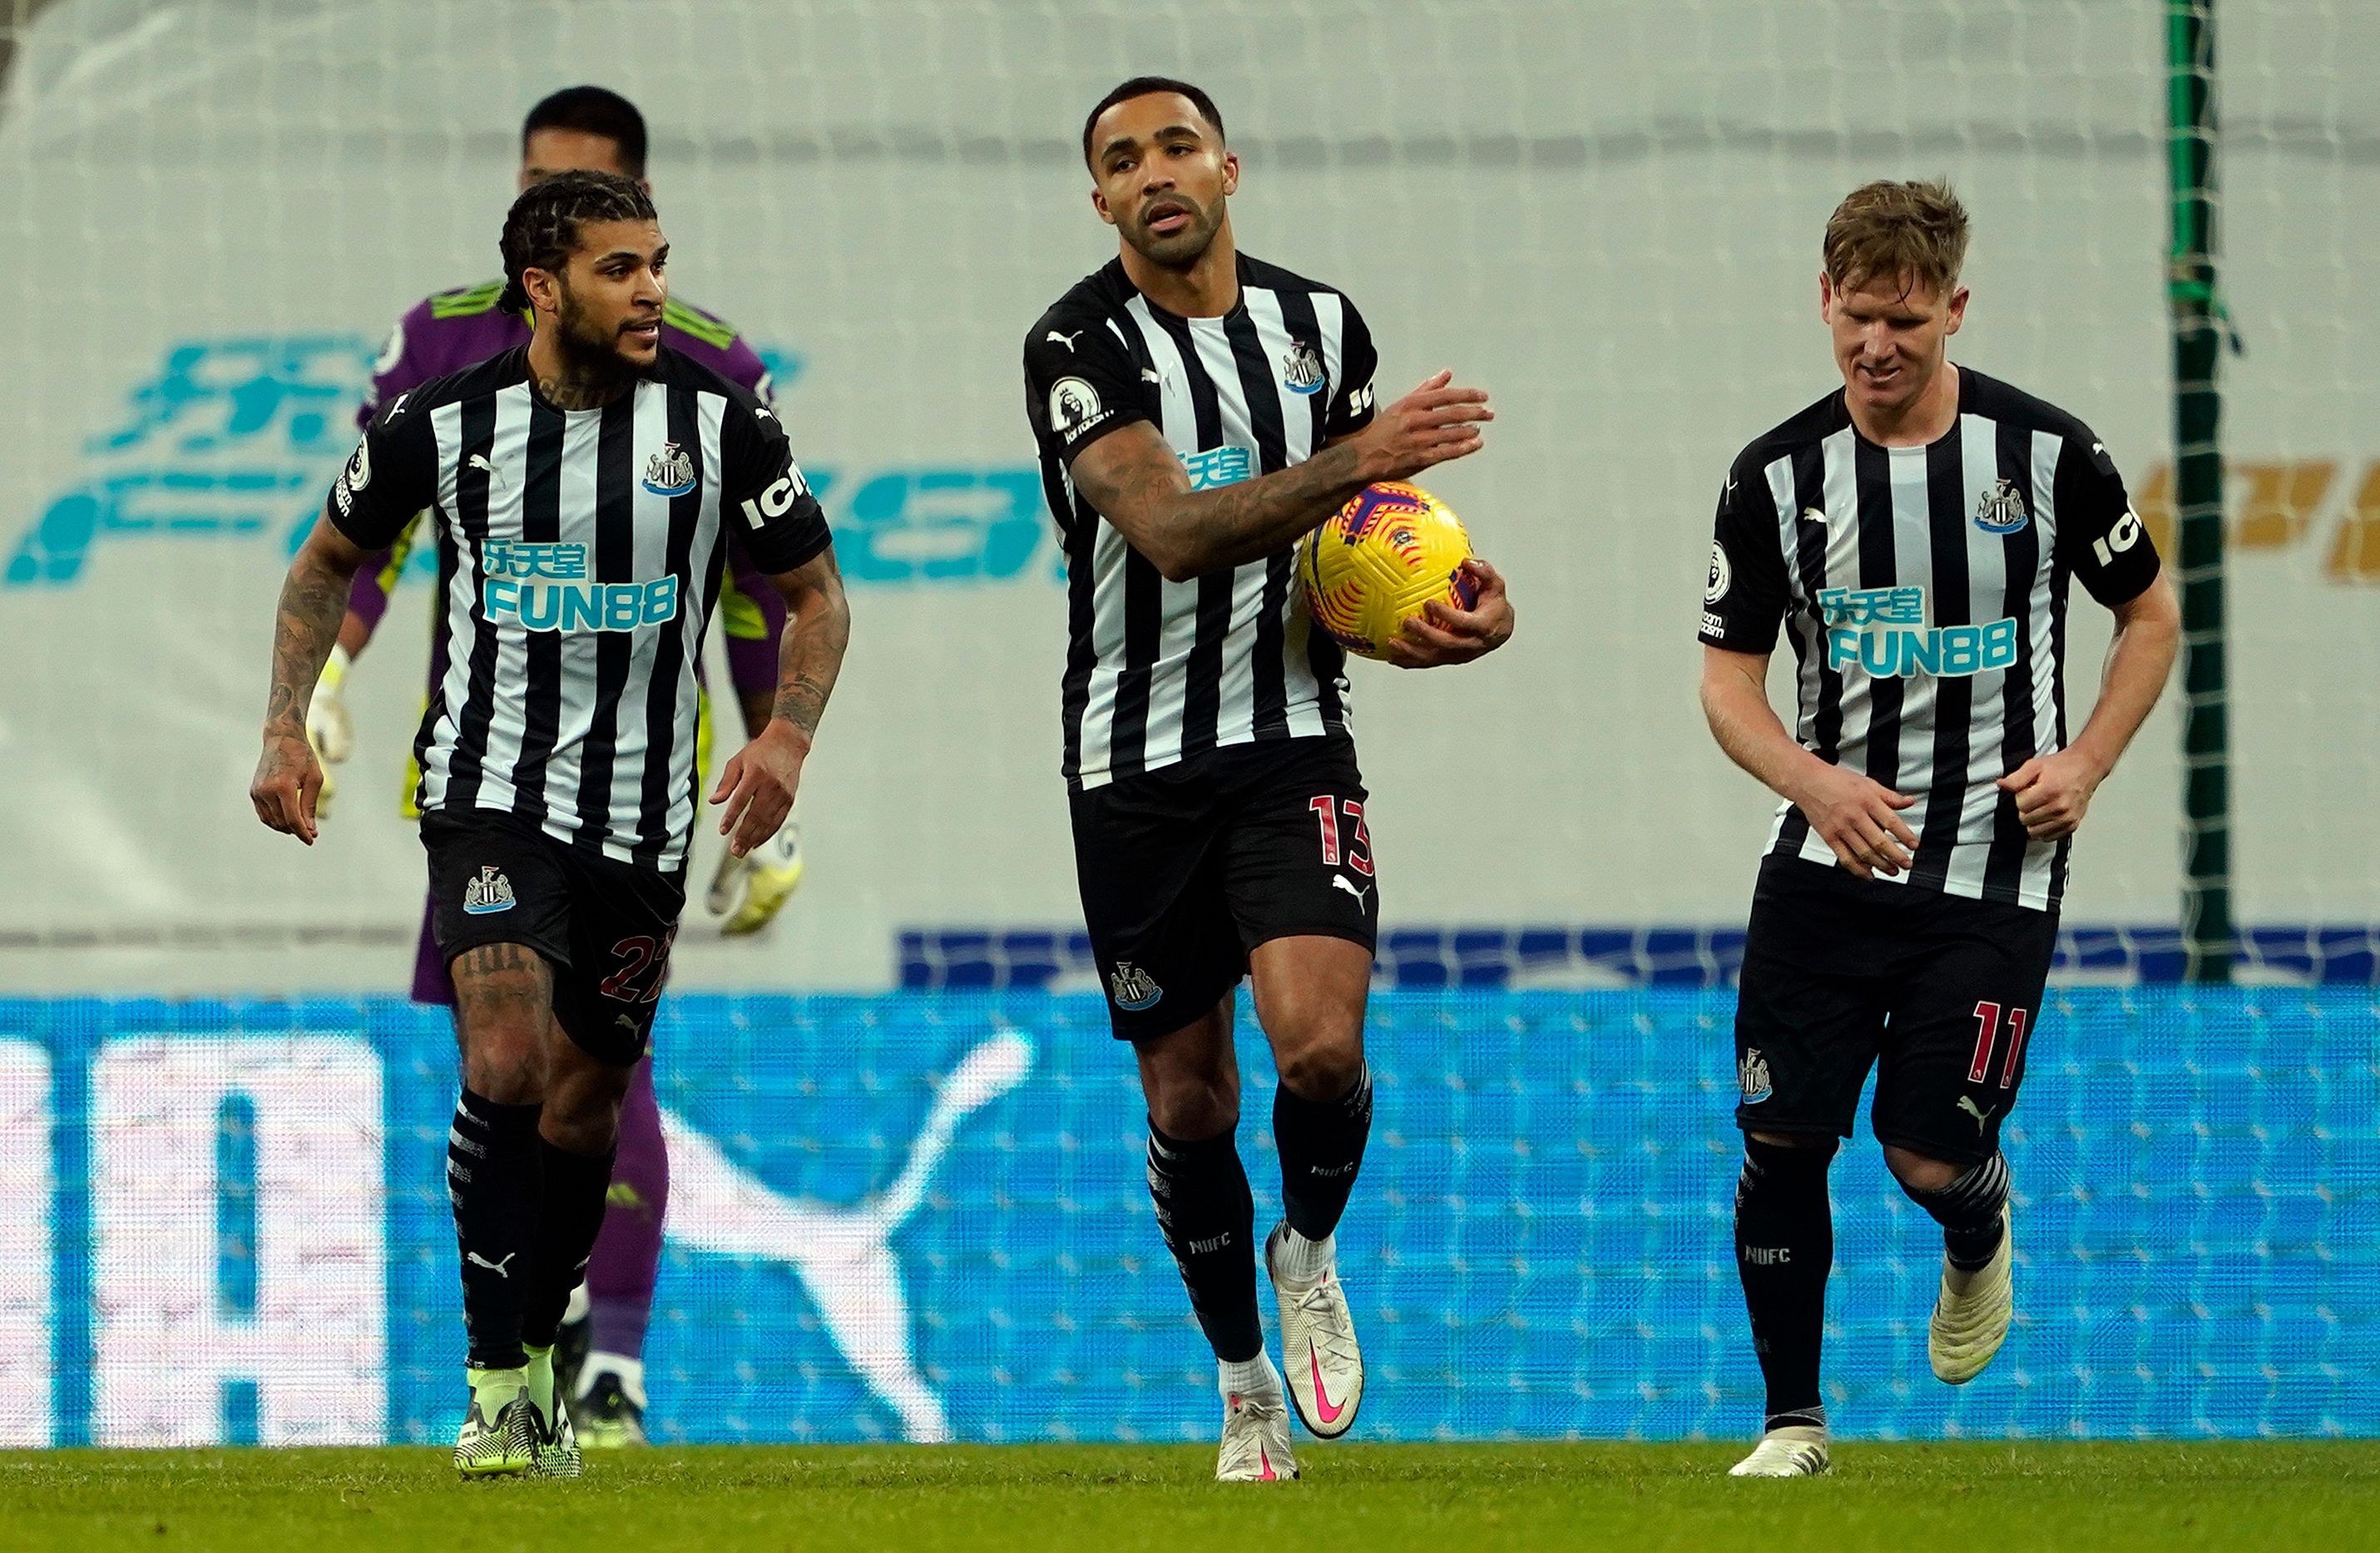 4-4-2 Newcastle United Predicted Lineup Vs Crystal Palace (Newcastle players are seen in the picture)